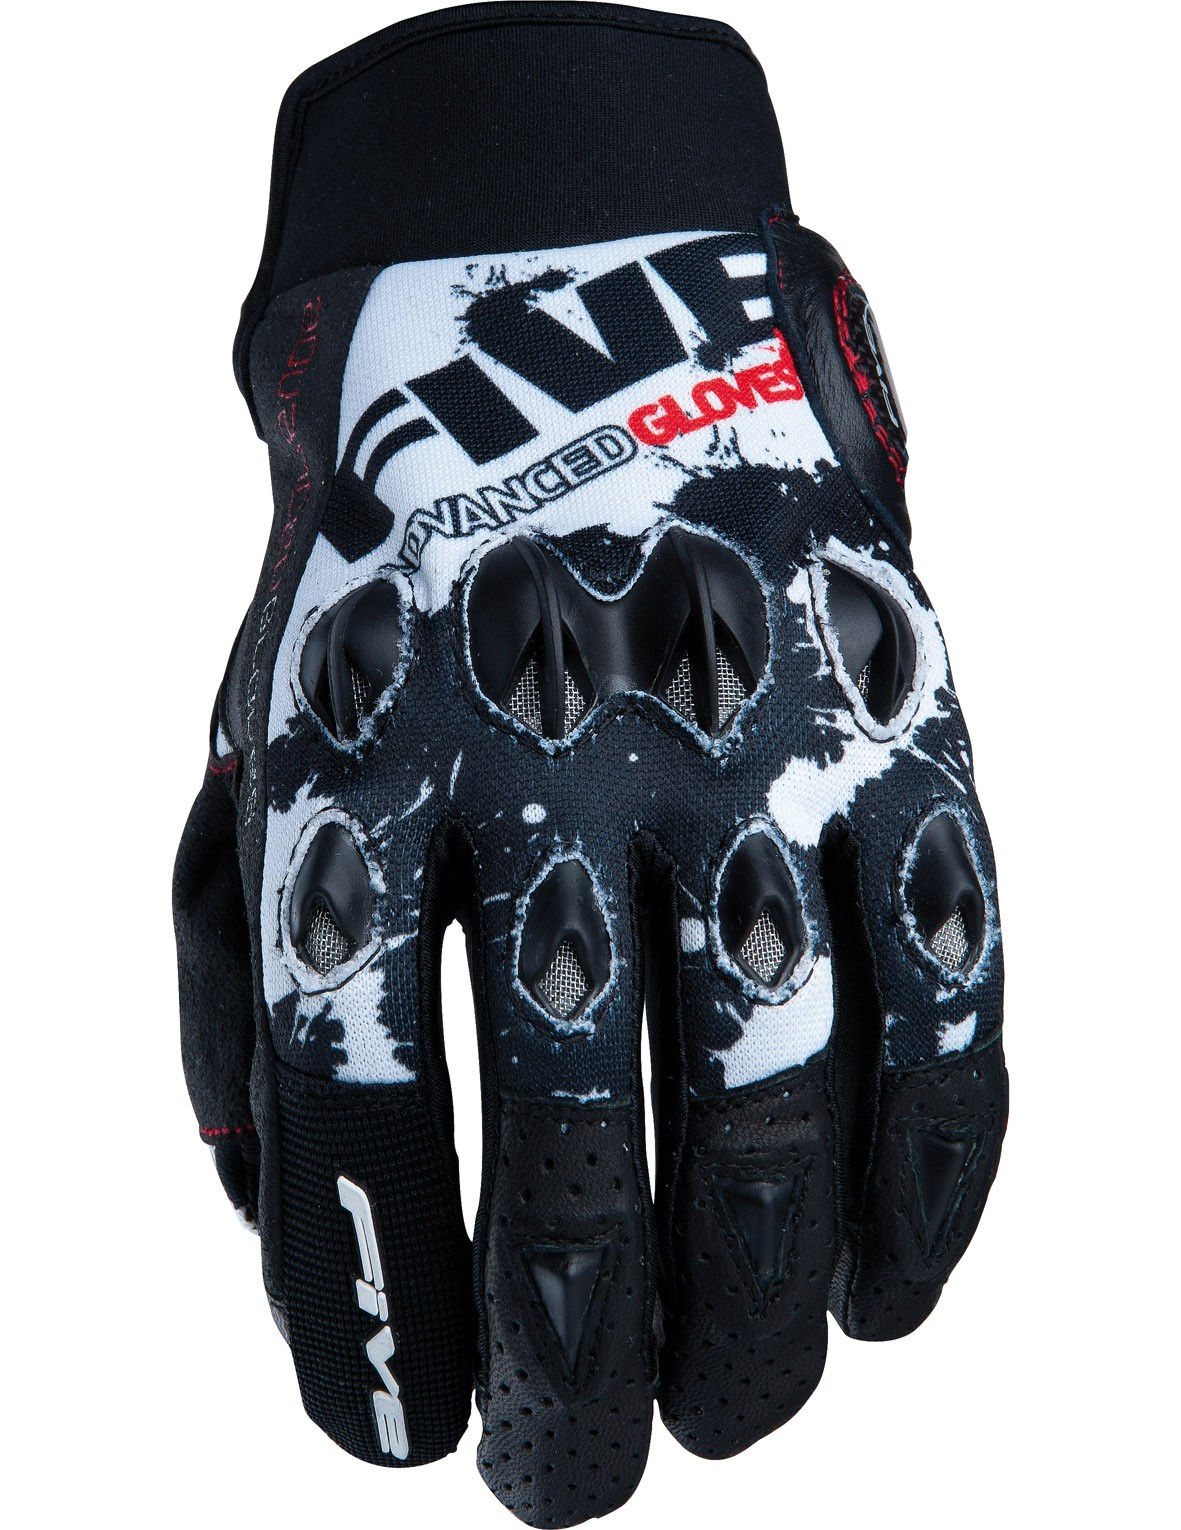 Перчатки FIVE, STUNT REPLICA Splash black/white XXL